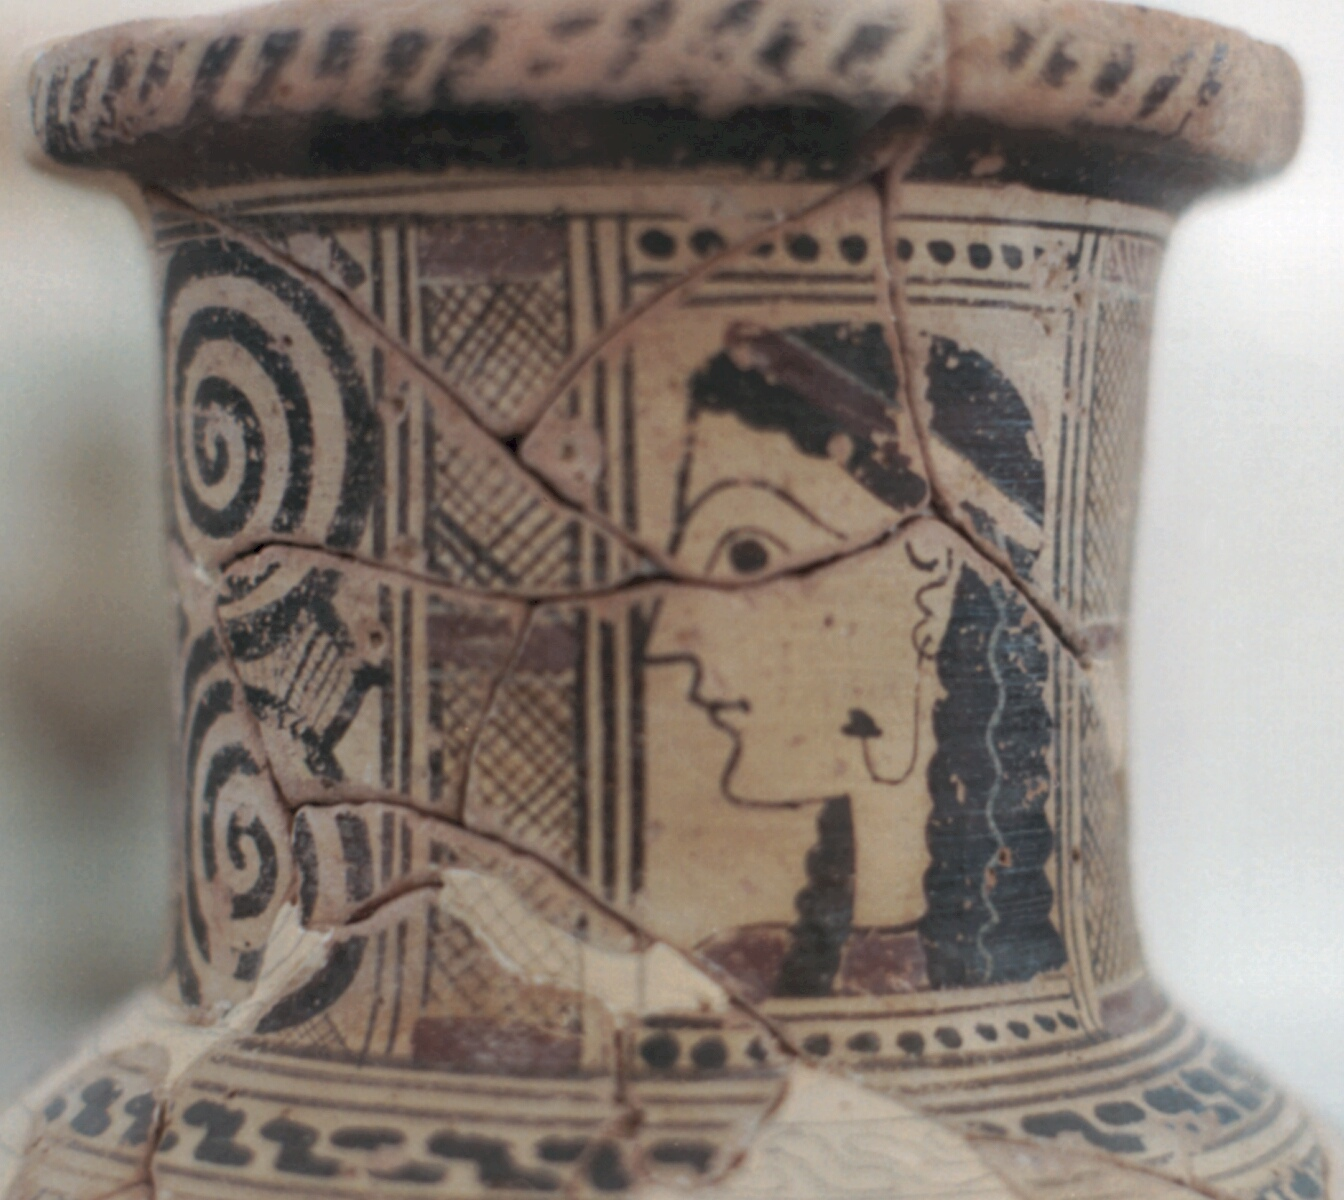 Head girls painted on throat late archaic island vase. Ear-drop in left ear is embedded also in face. Left is decorated double spiral